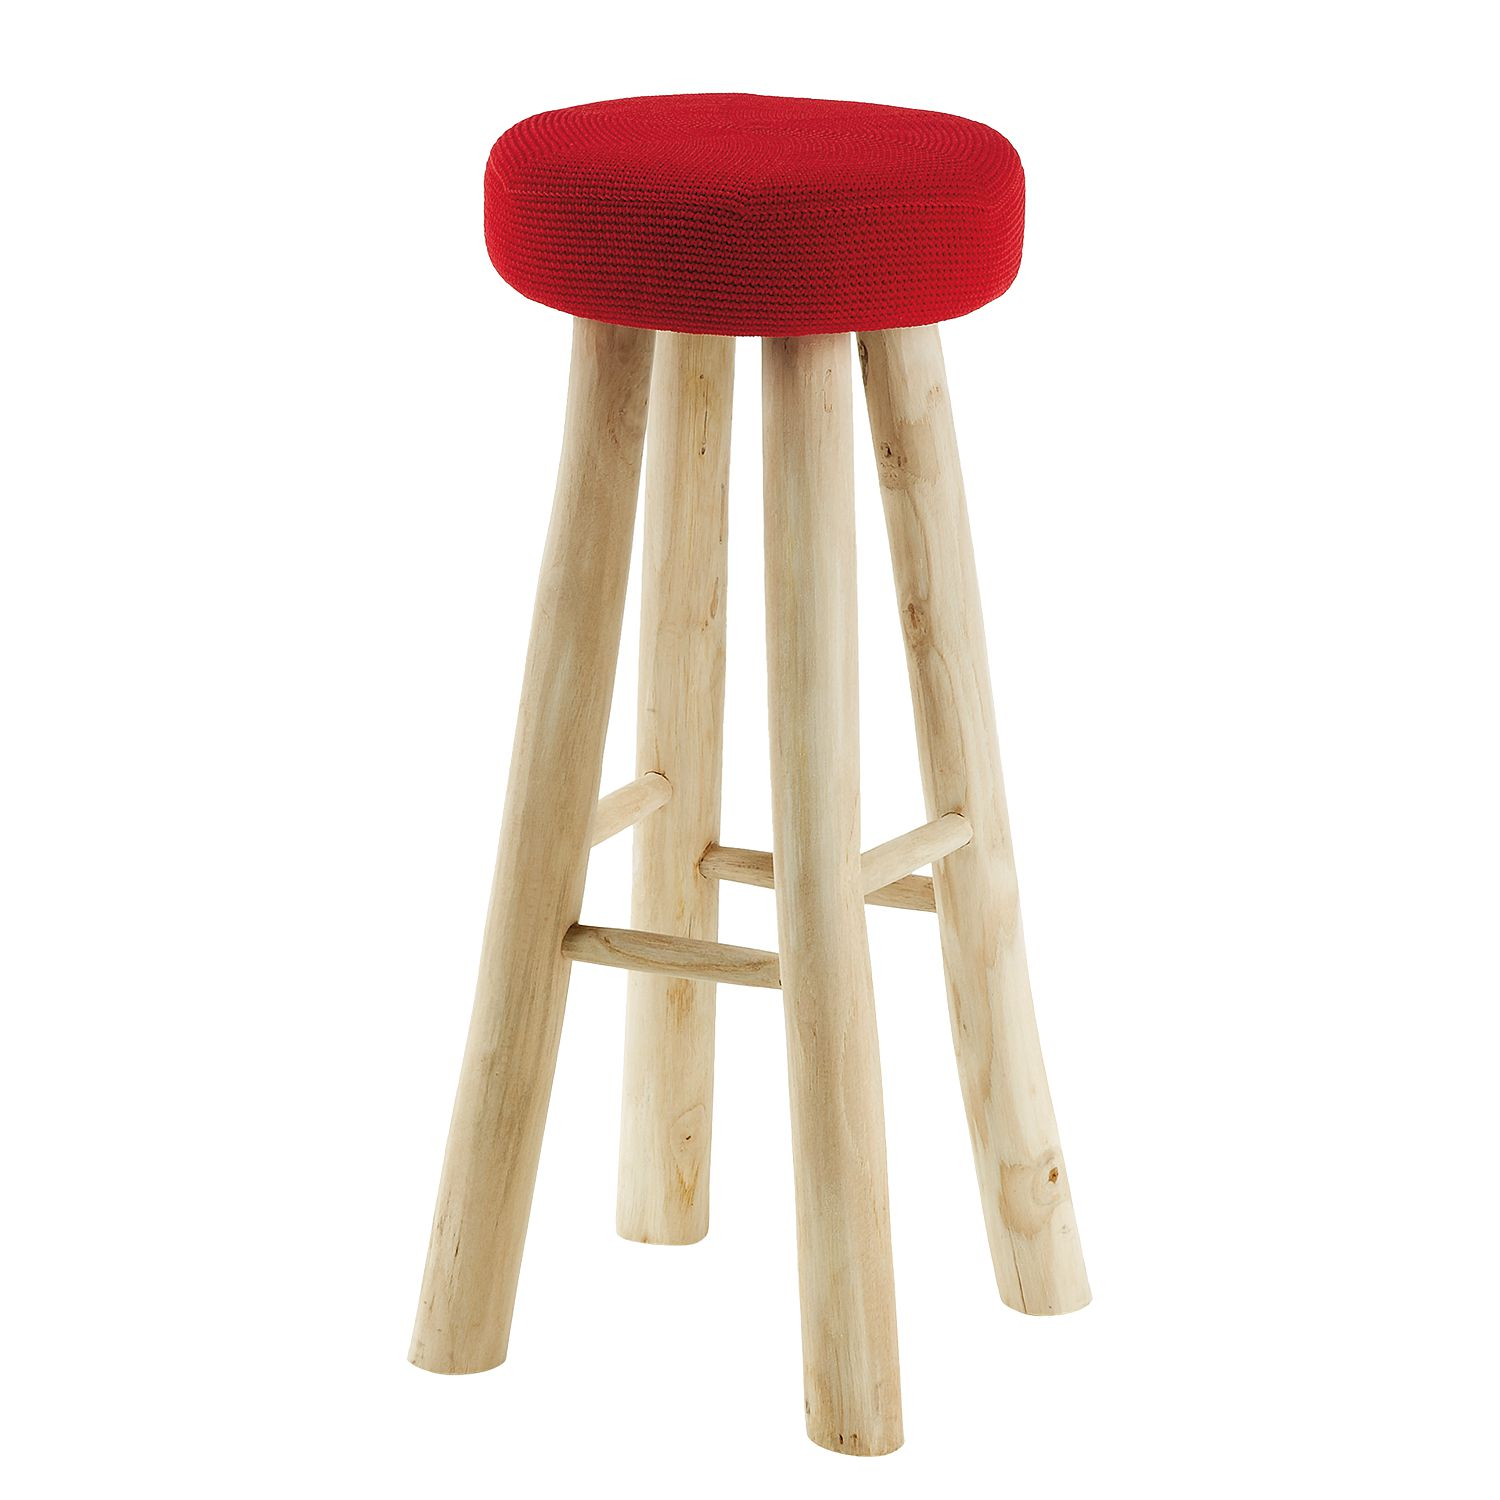 Tabouret de bar Abbeville Teck massif Rouge Teck naturel